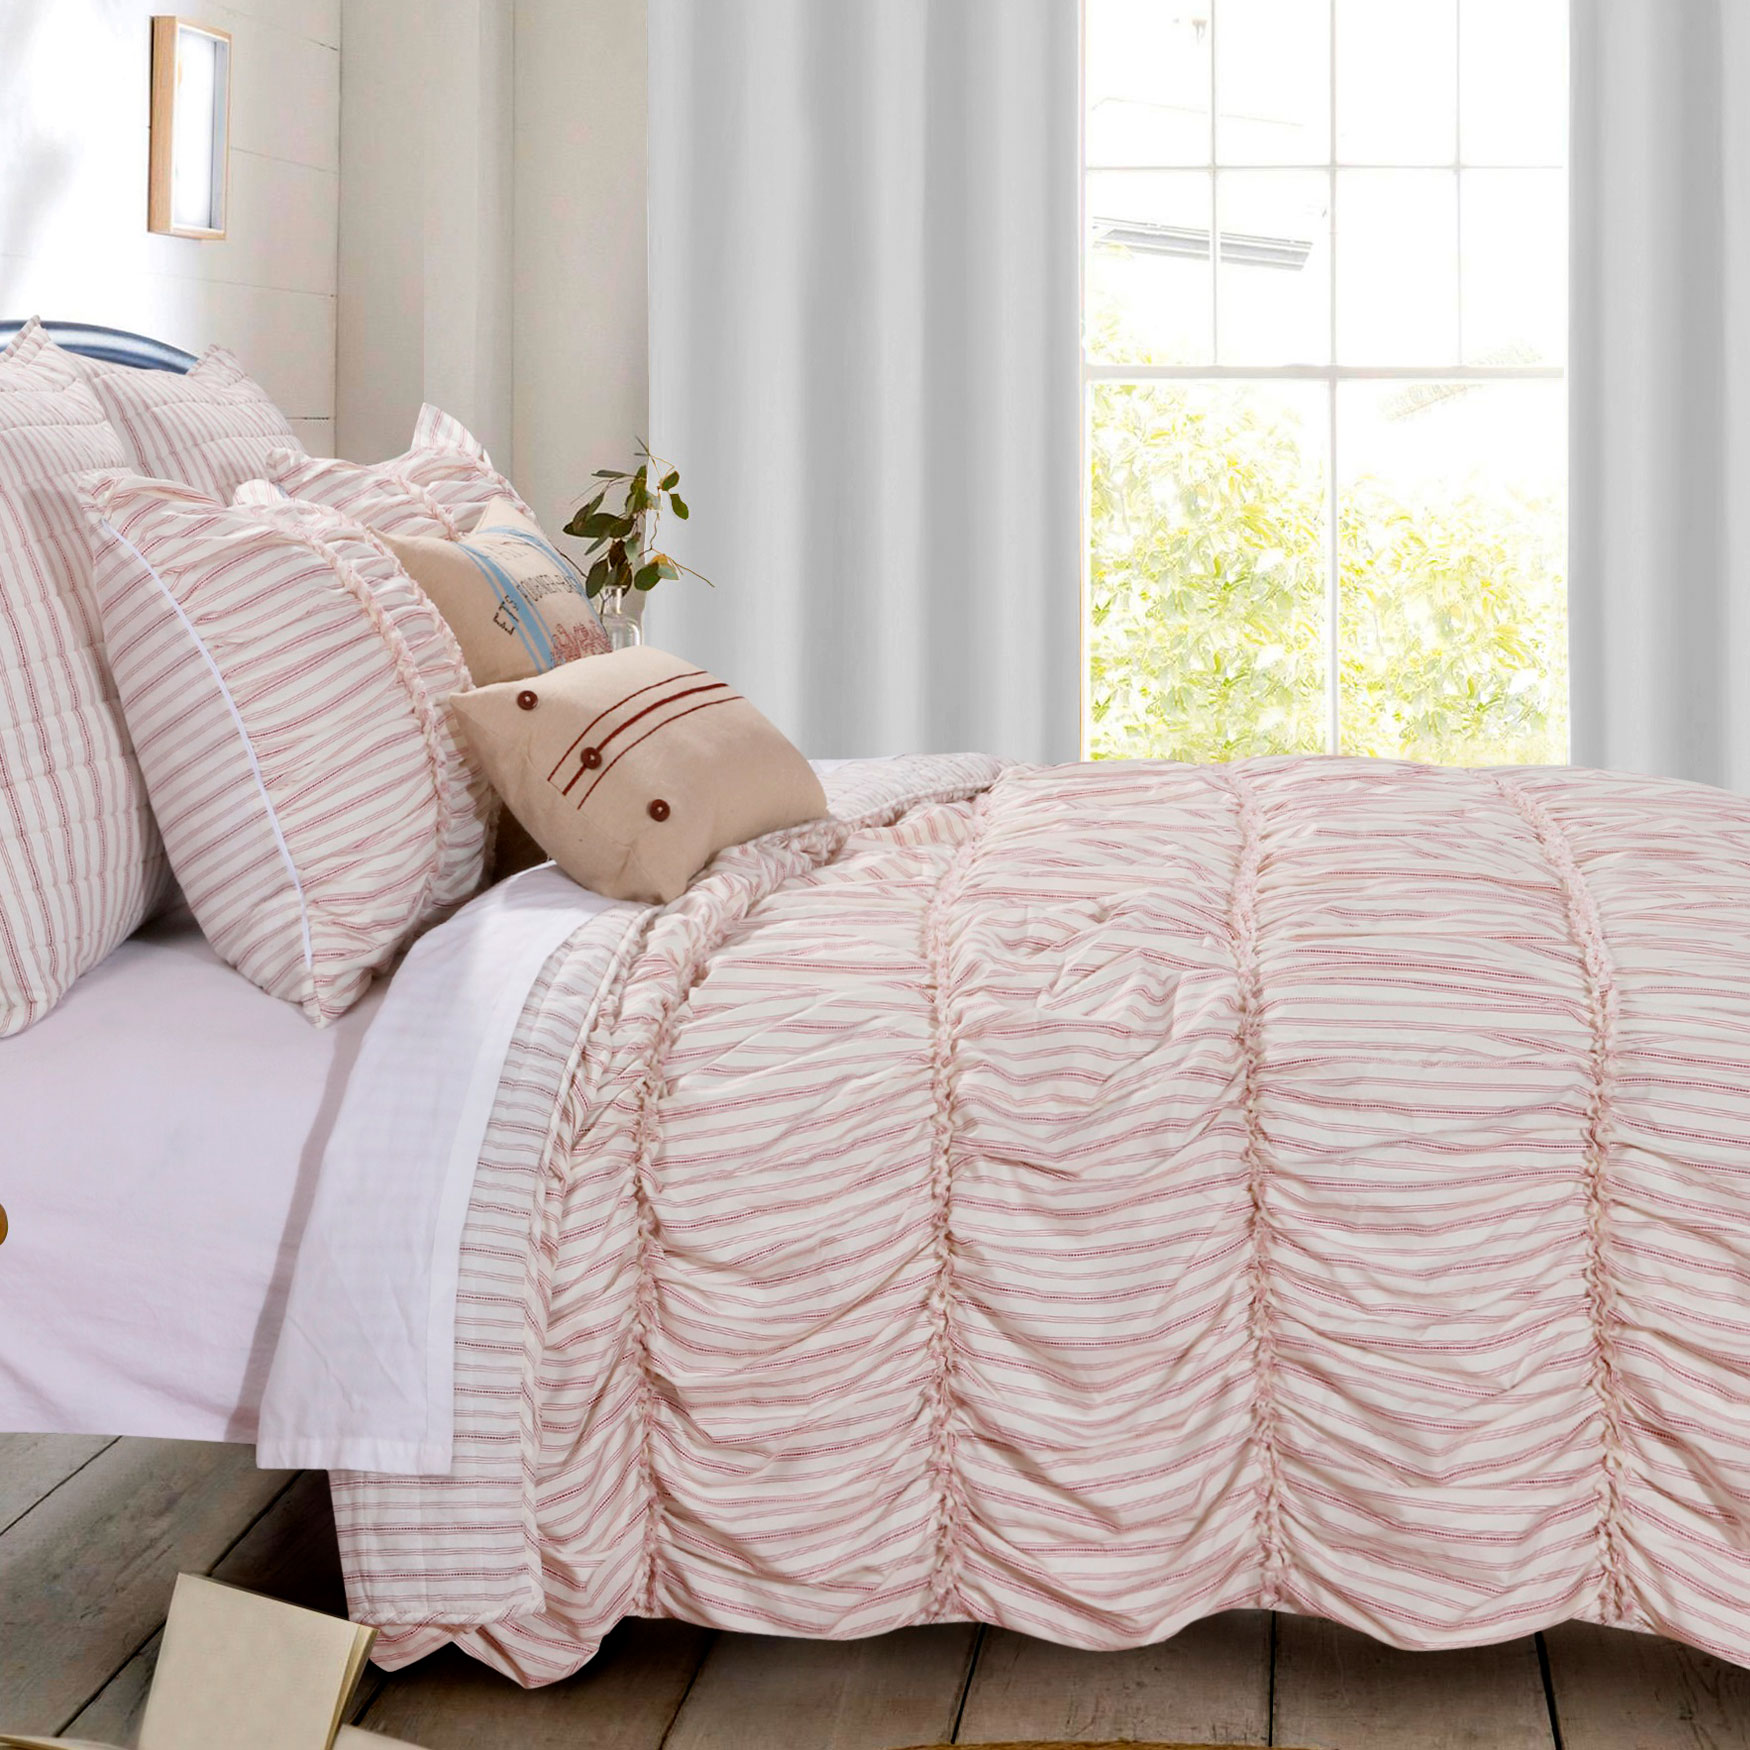 Farmhouse Chic Quilt Set by Greenland Home Fashions,